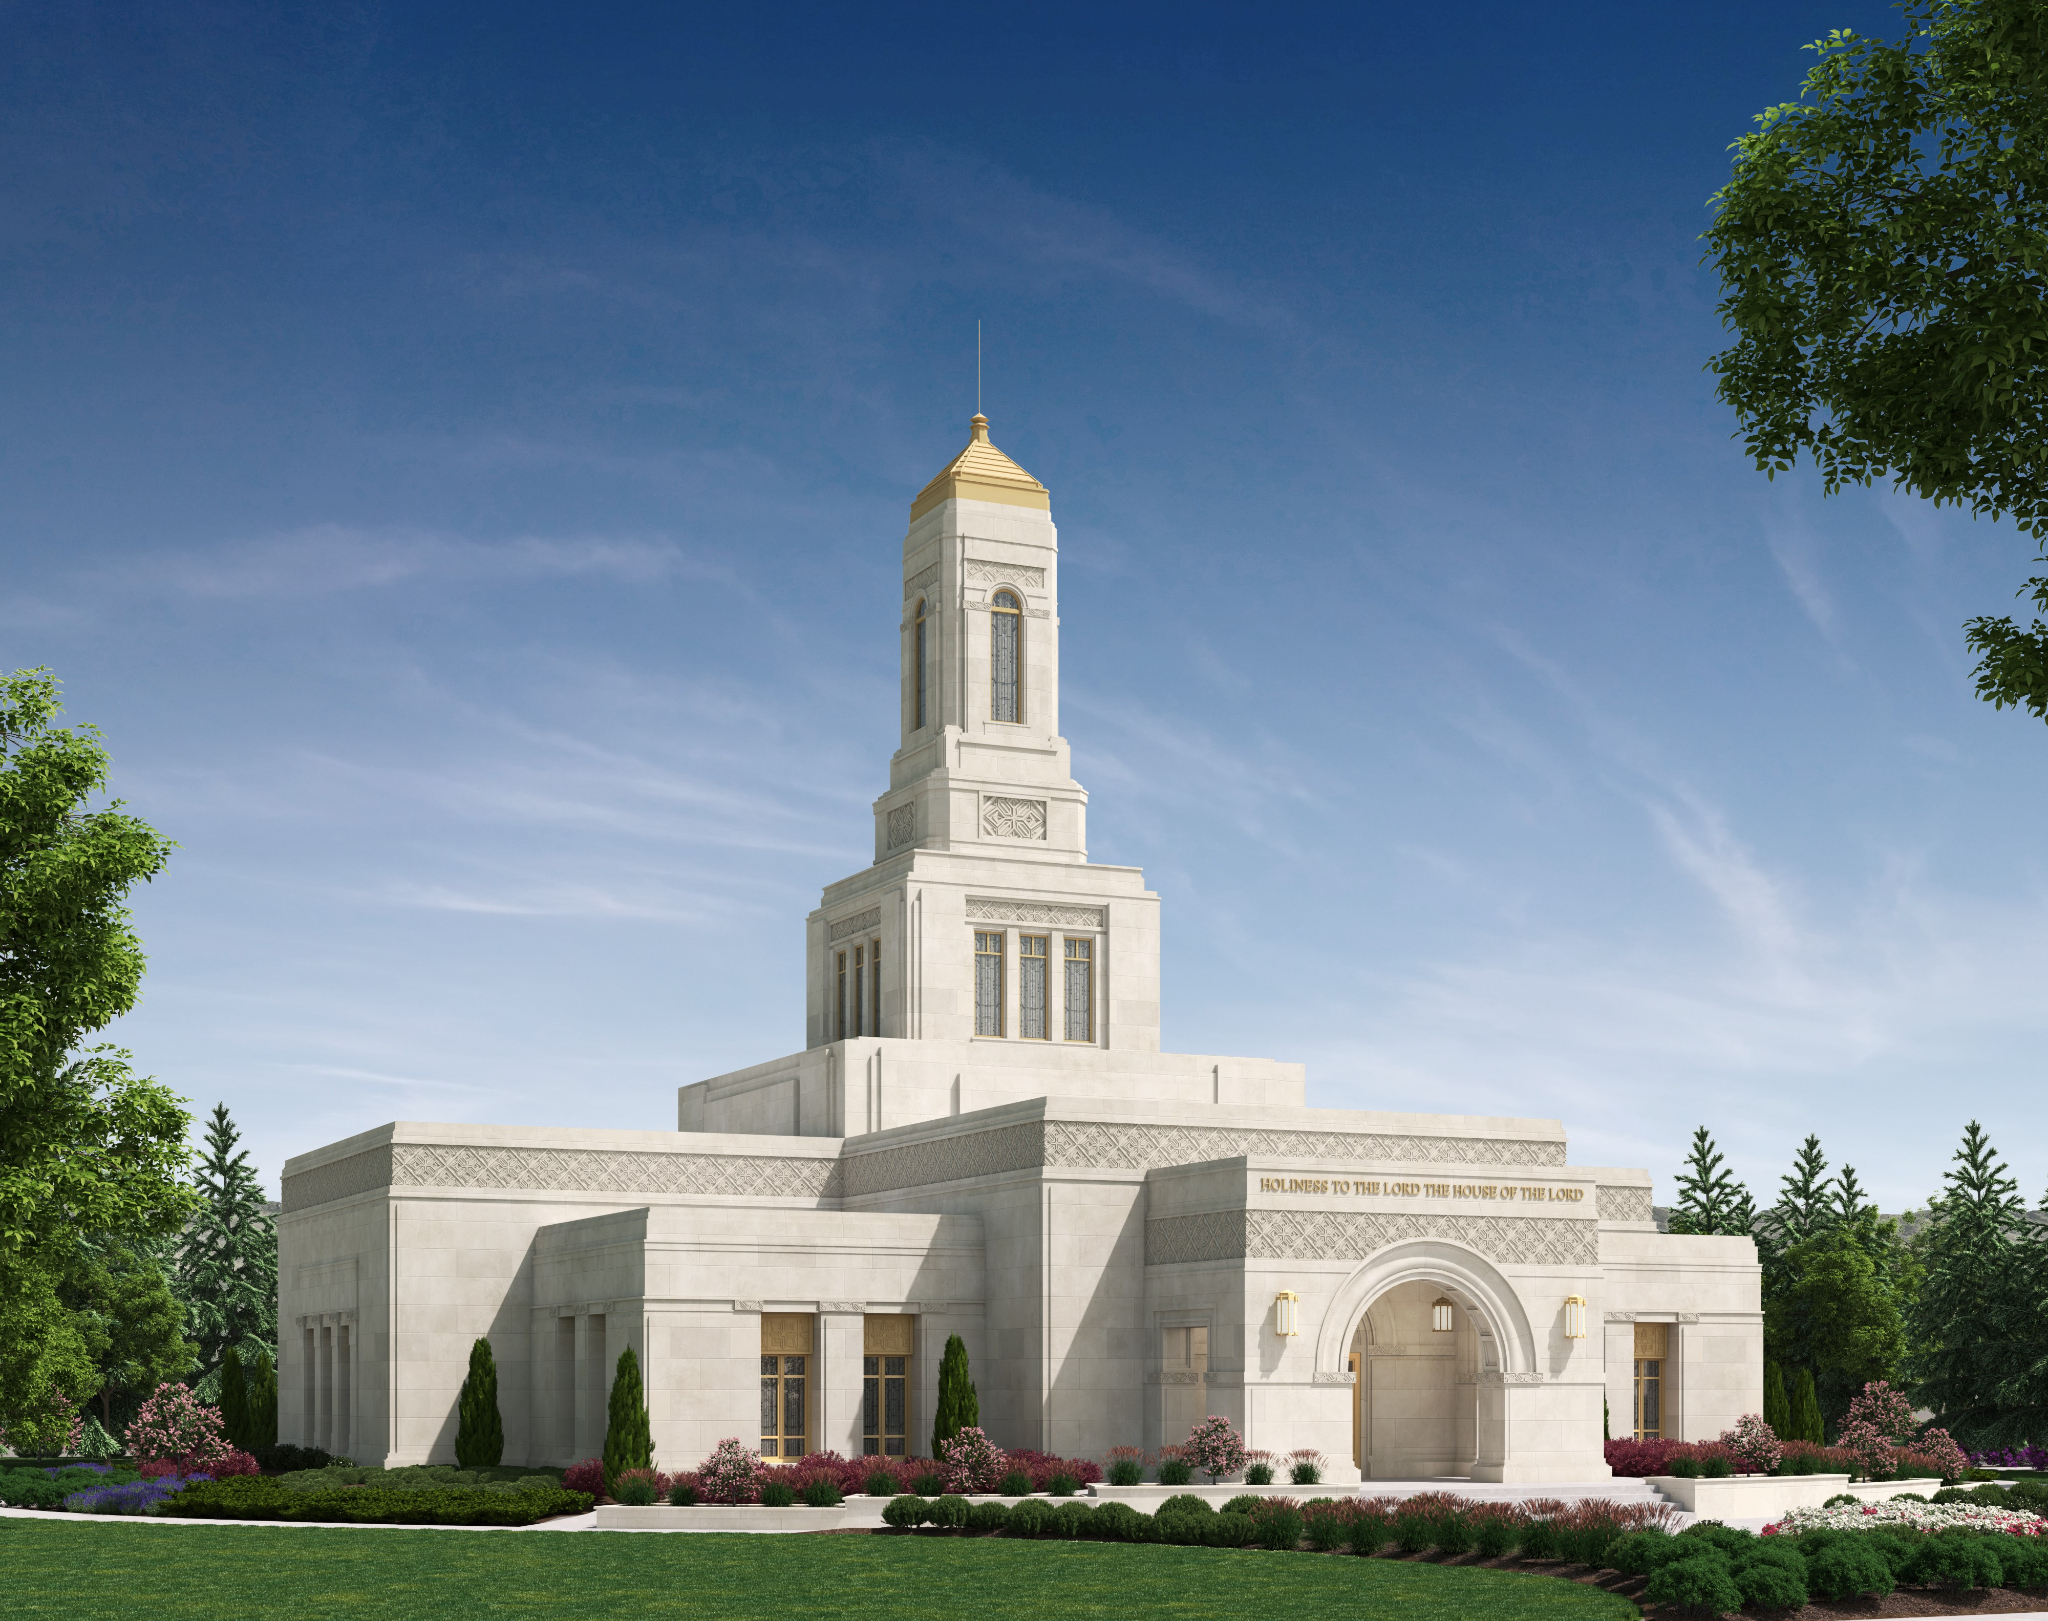 An artist's rendering of the Helena Montana Temple.